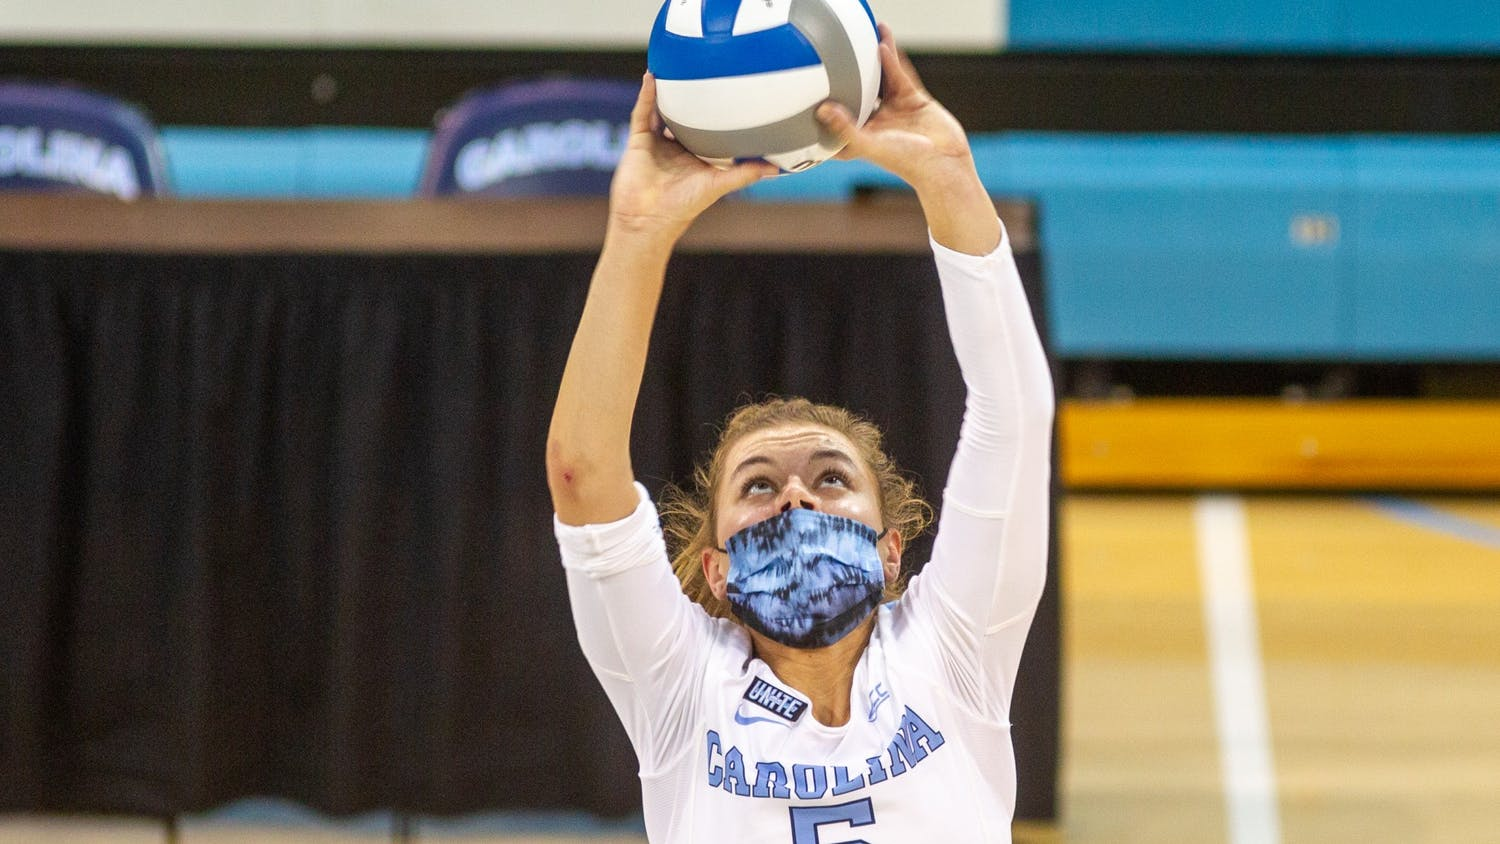 UNC Junior Annabelle Archer (5) sets the ball at the volleyball game against Virginia on Saturday, Oct. 31, 2020 at Carmichael Arena. The Tar Heels won 3-1.